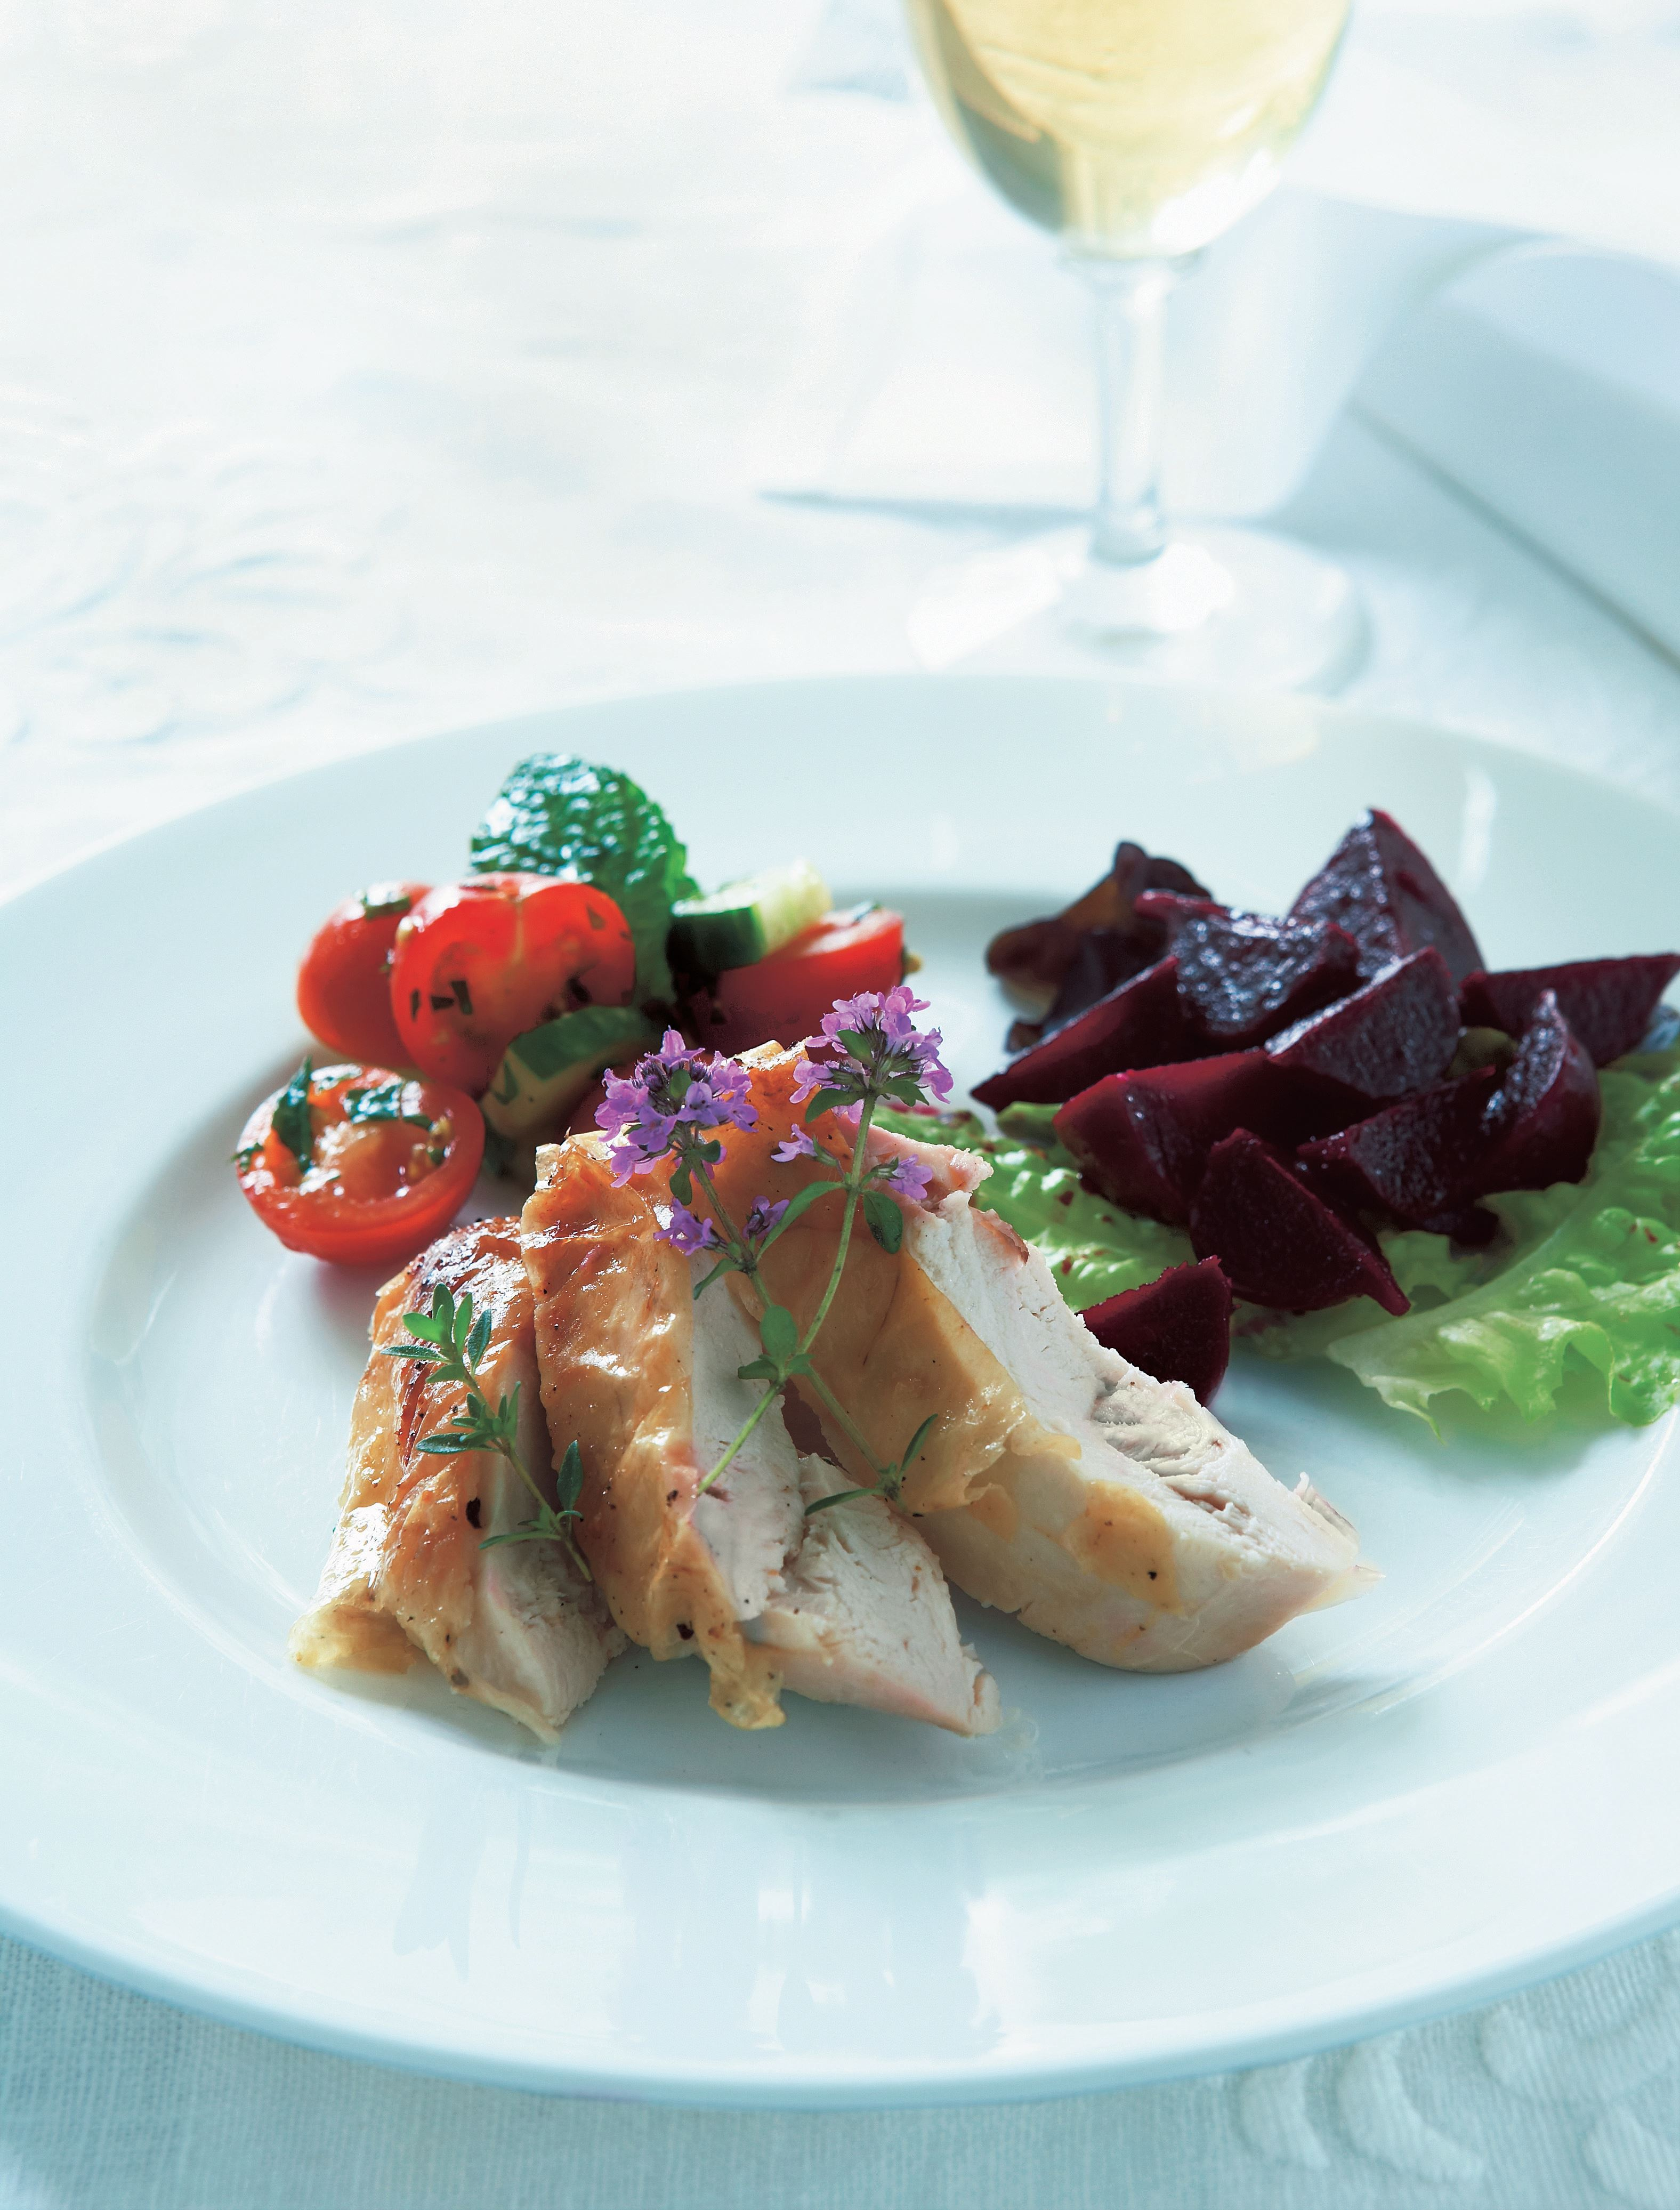 Lightly salted chicken with tomato-mint salad and beetroot salad